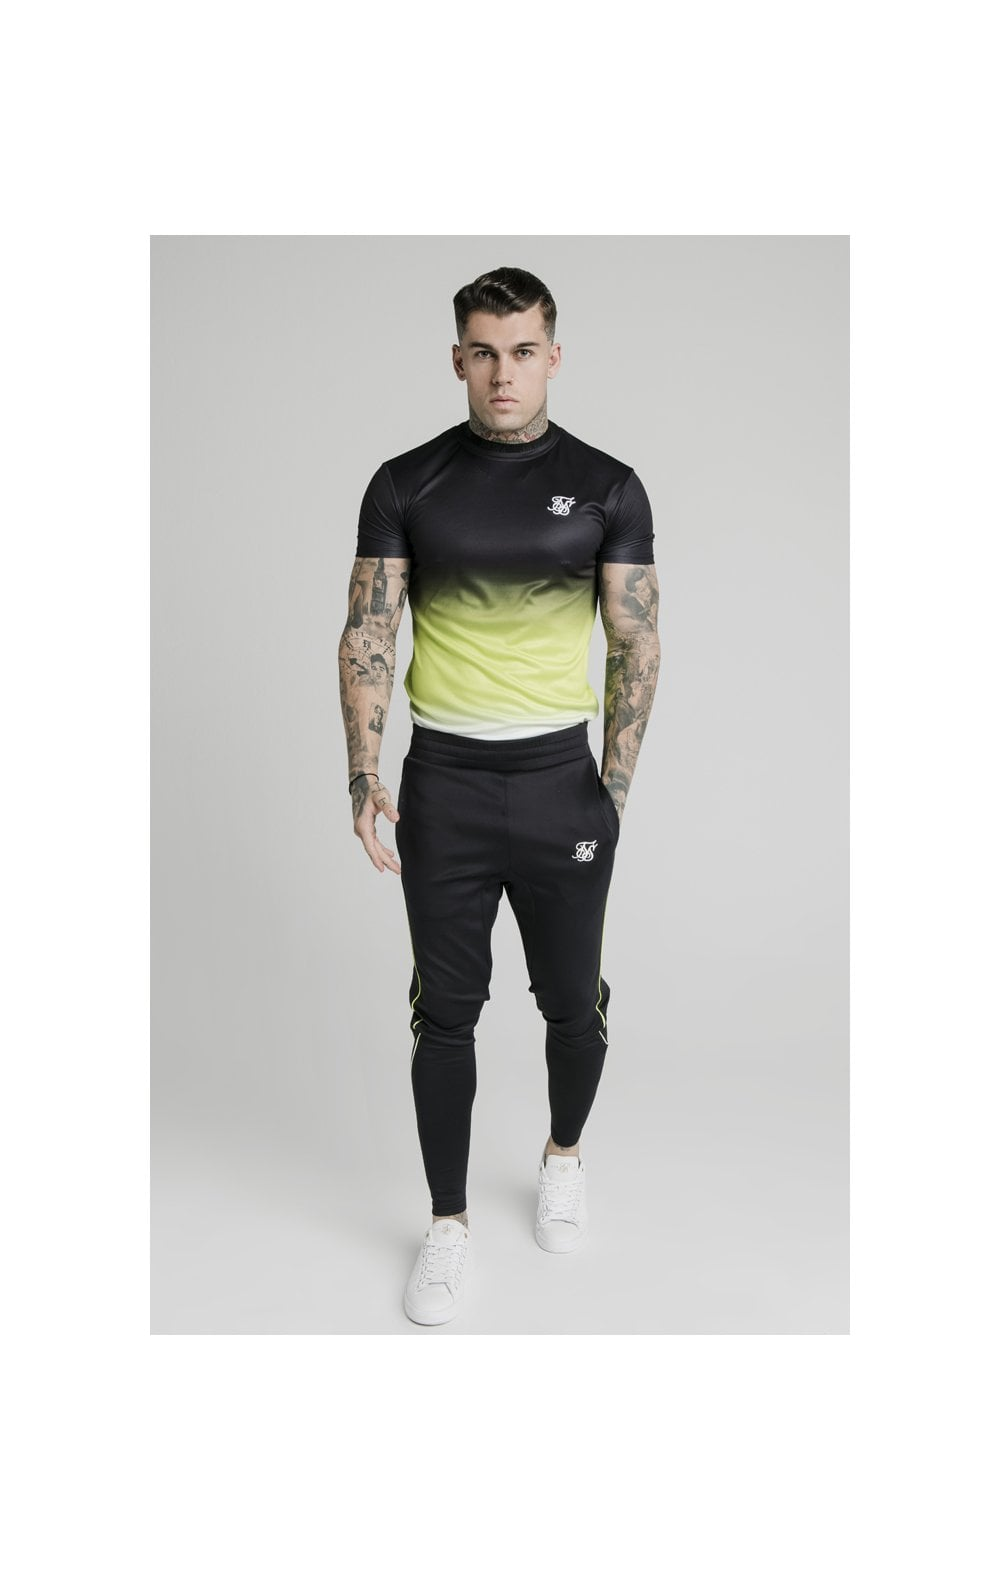 SikSilk S/S Tri Fade Tape Collar Tee - Black, Fluro & White (4)